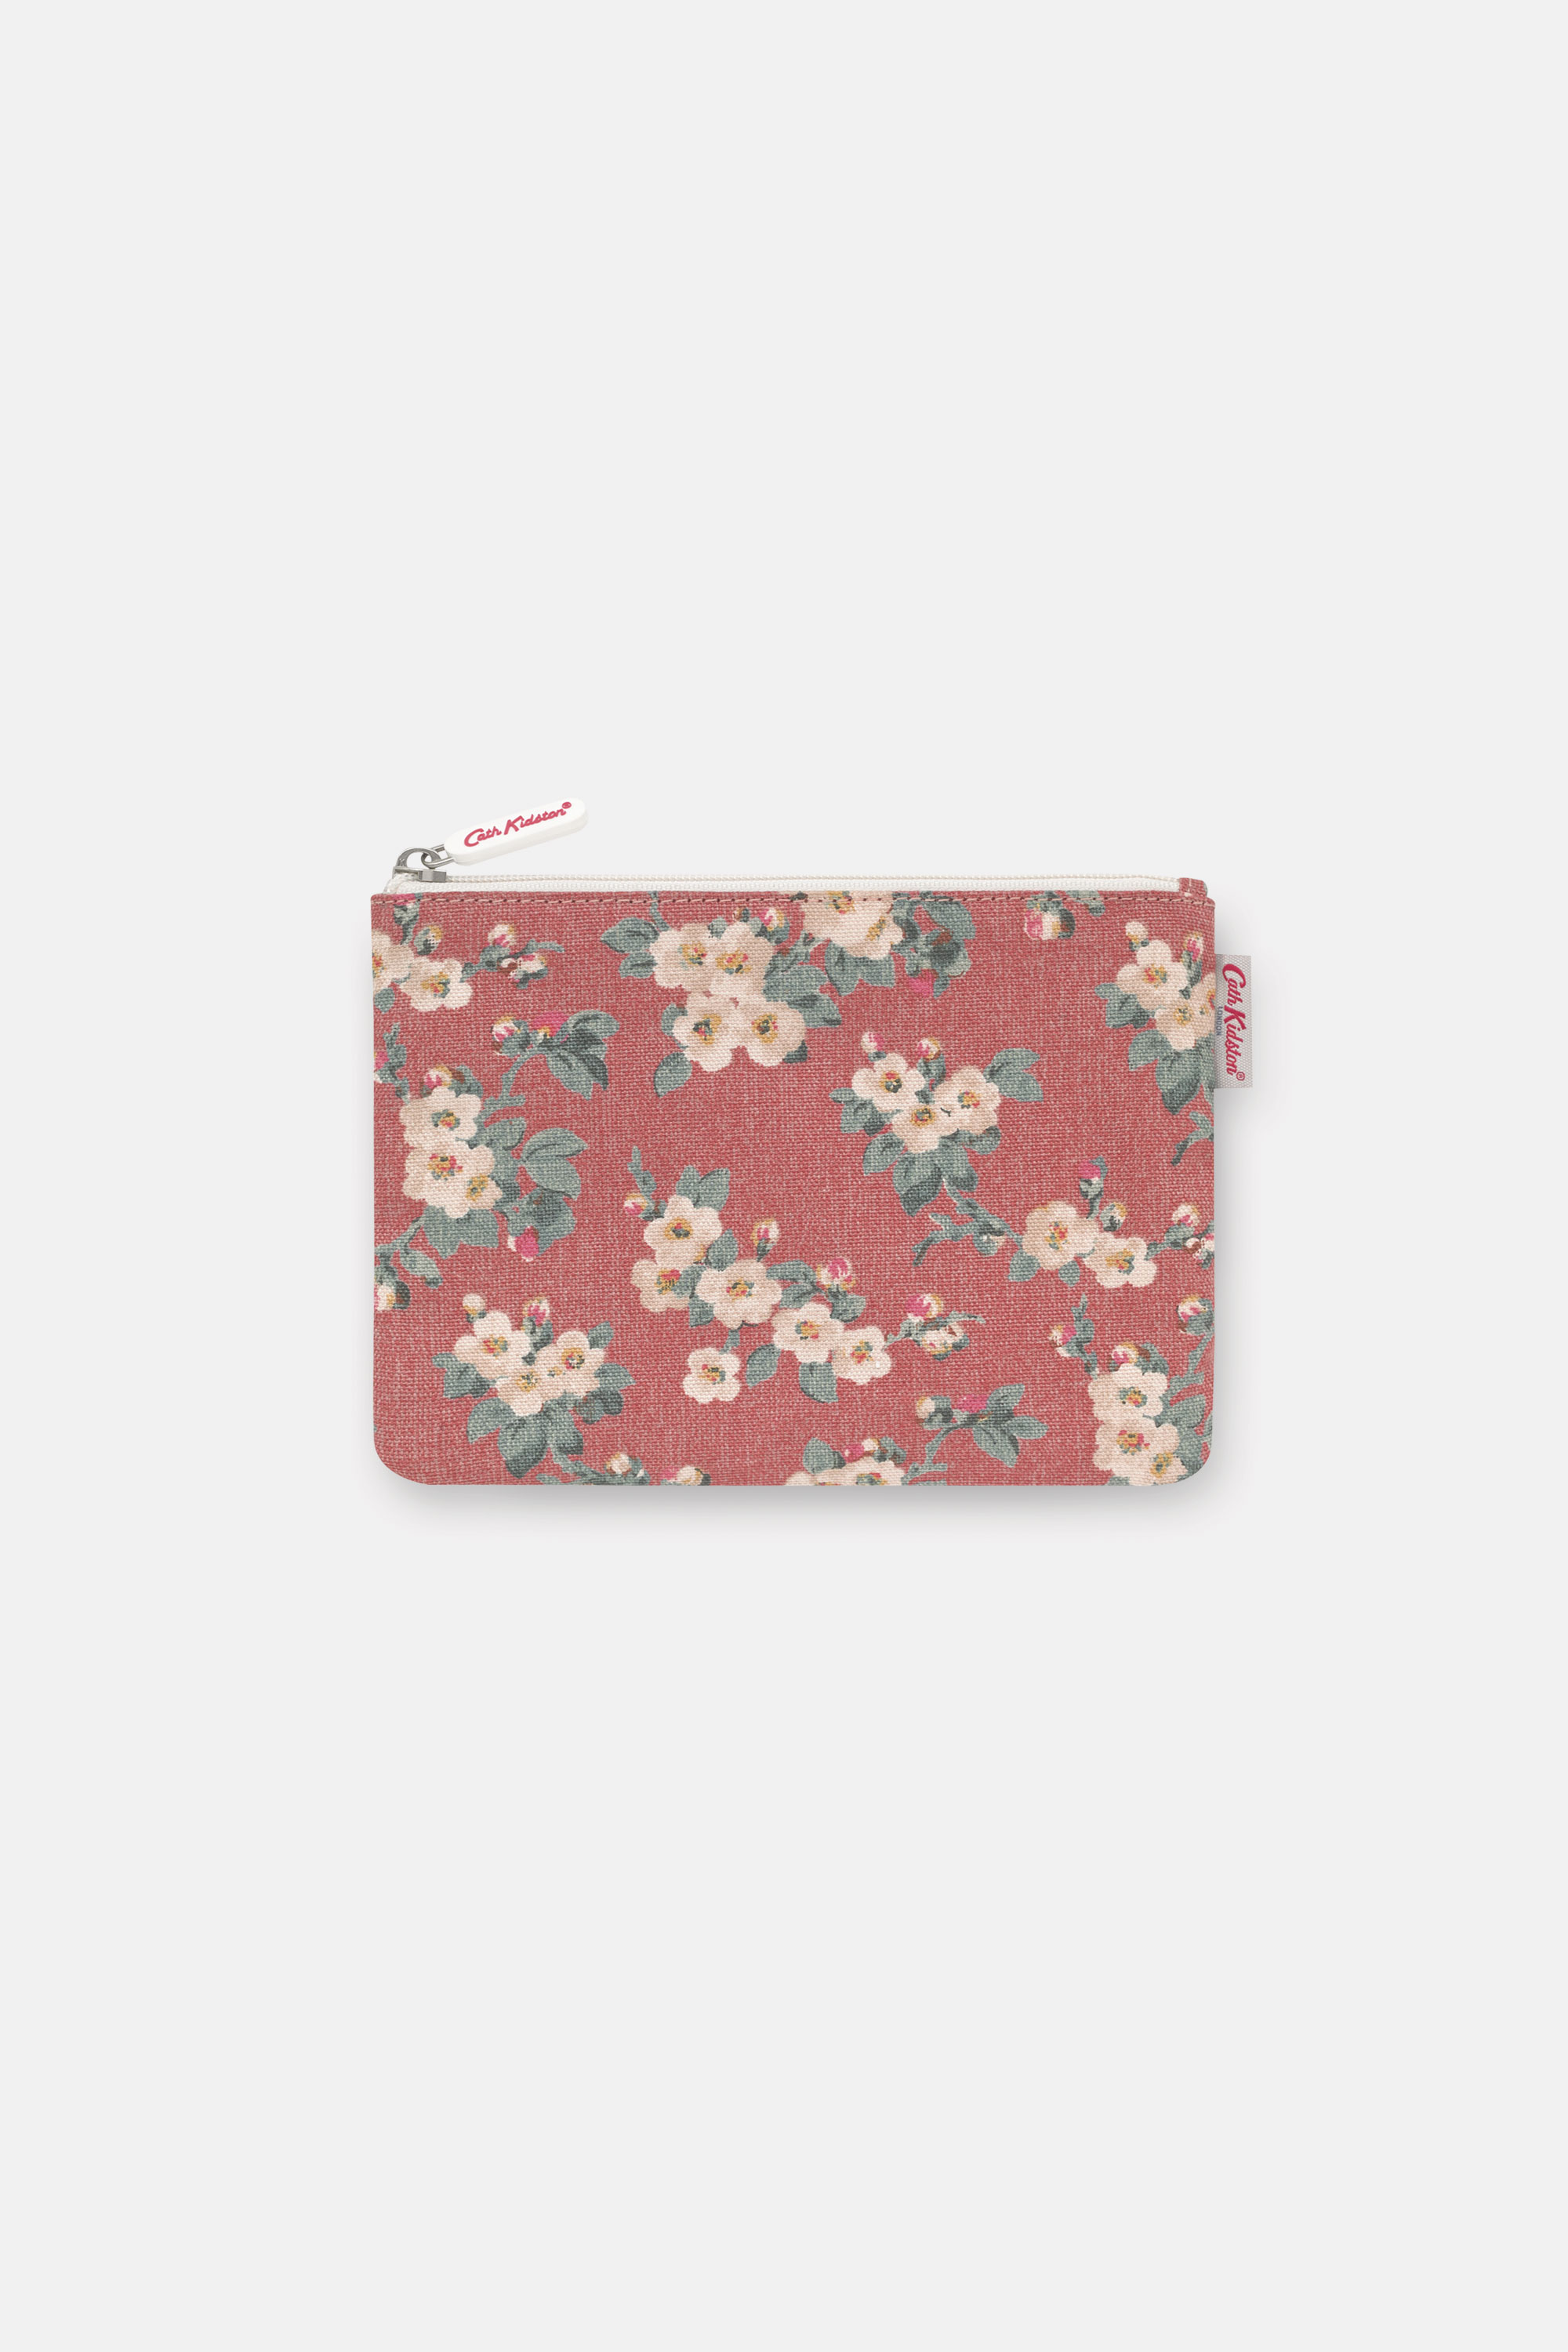 Cath Kidston Mayfield Blossom Pouch in Dusty Pink, 100% Cotton